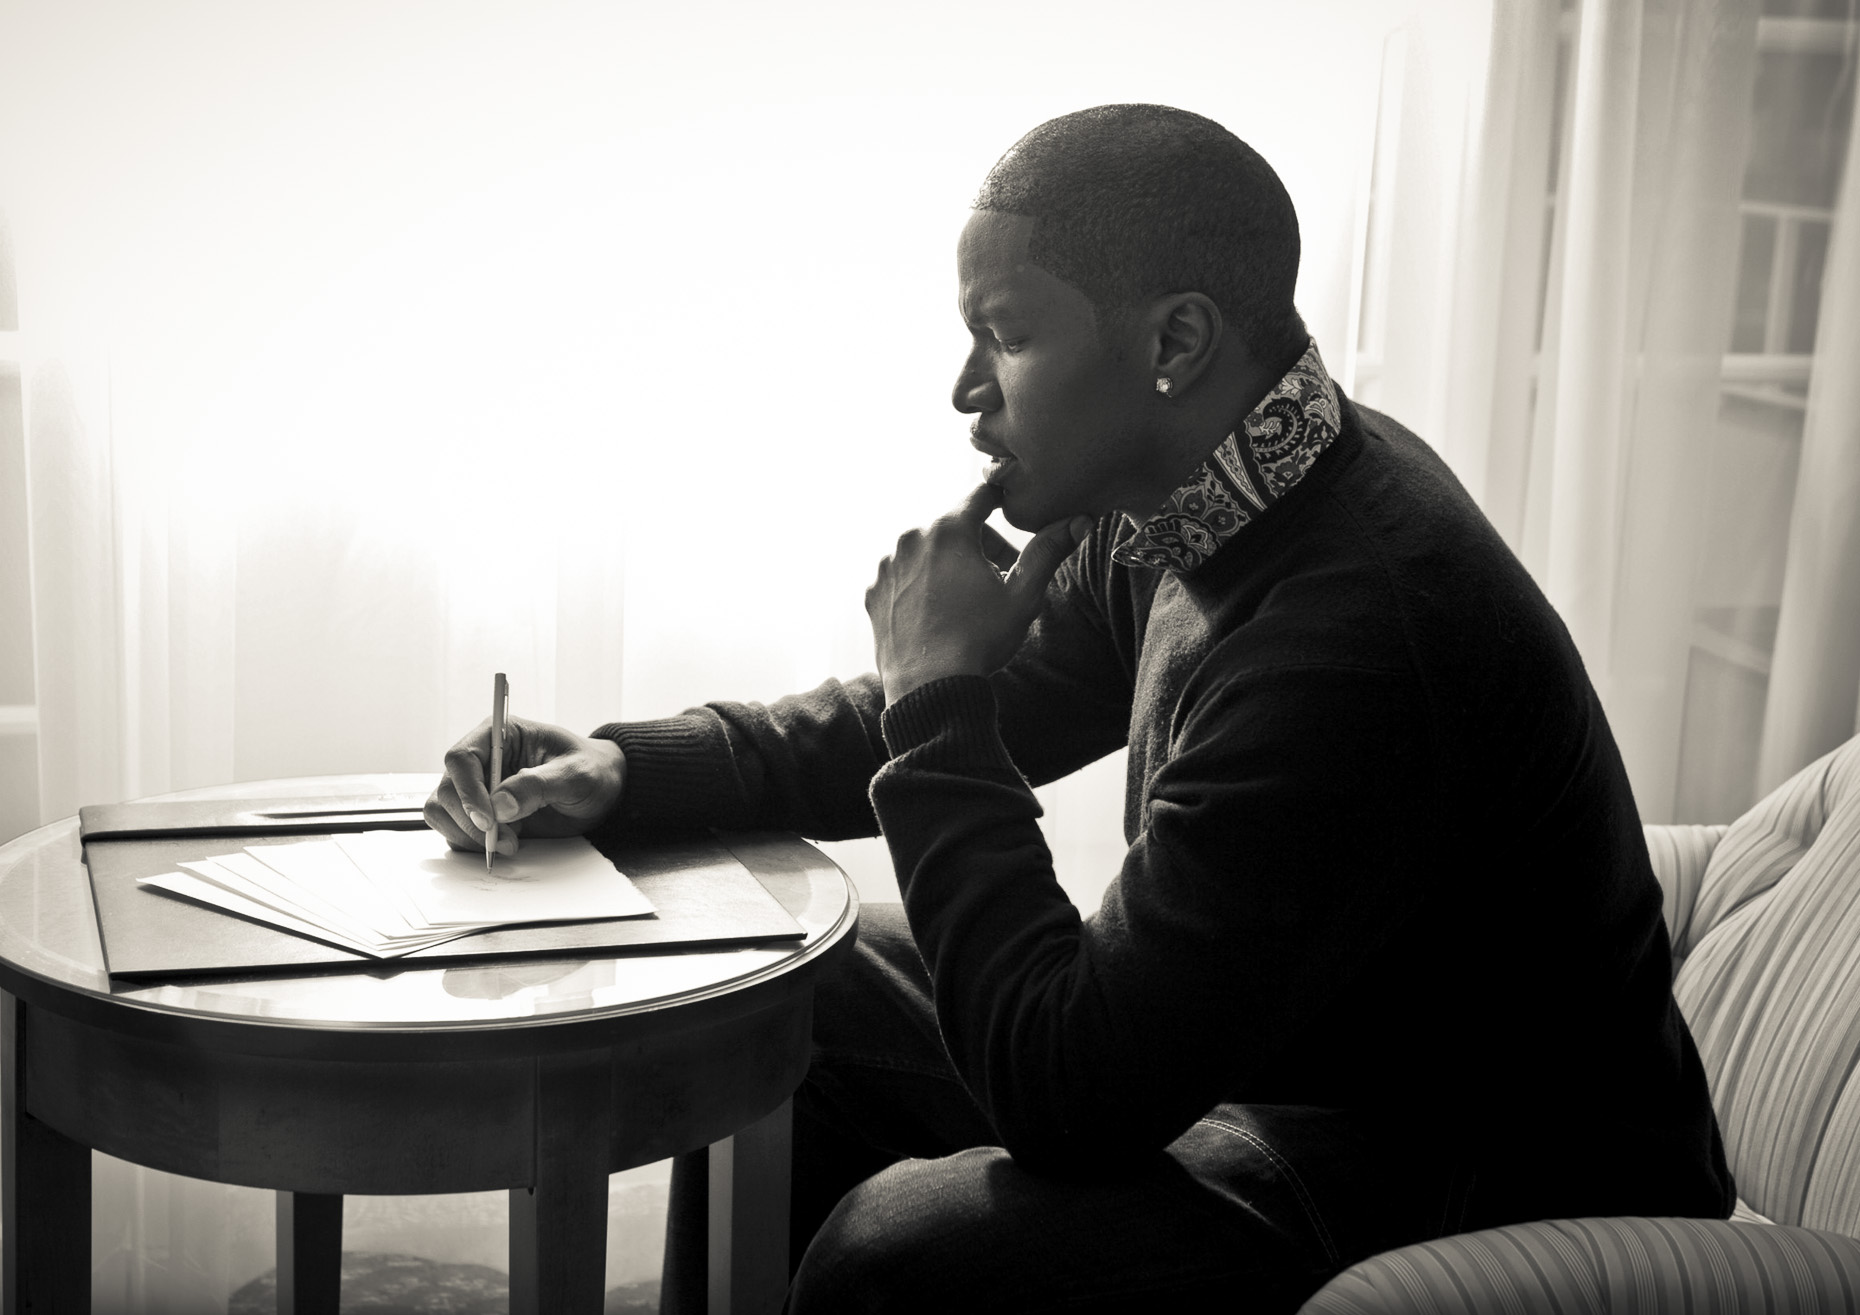 Justin_Jay_Jamie Fox writing